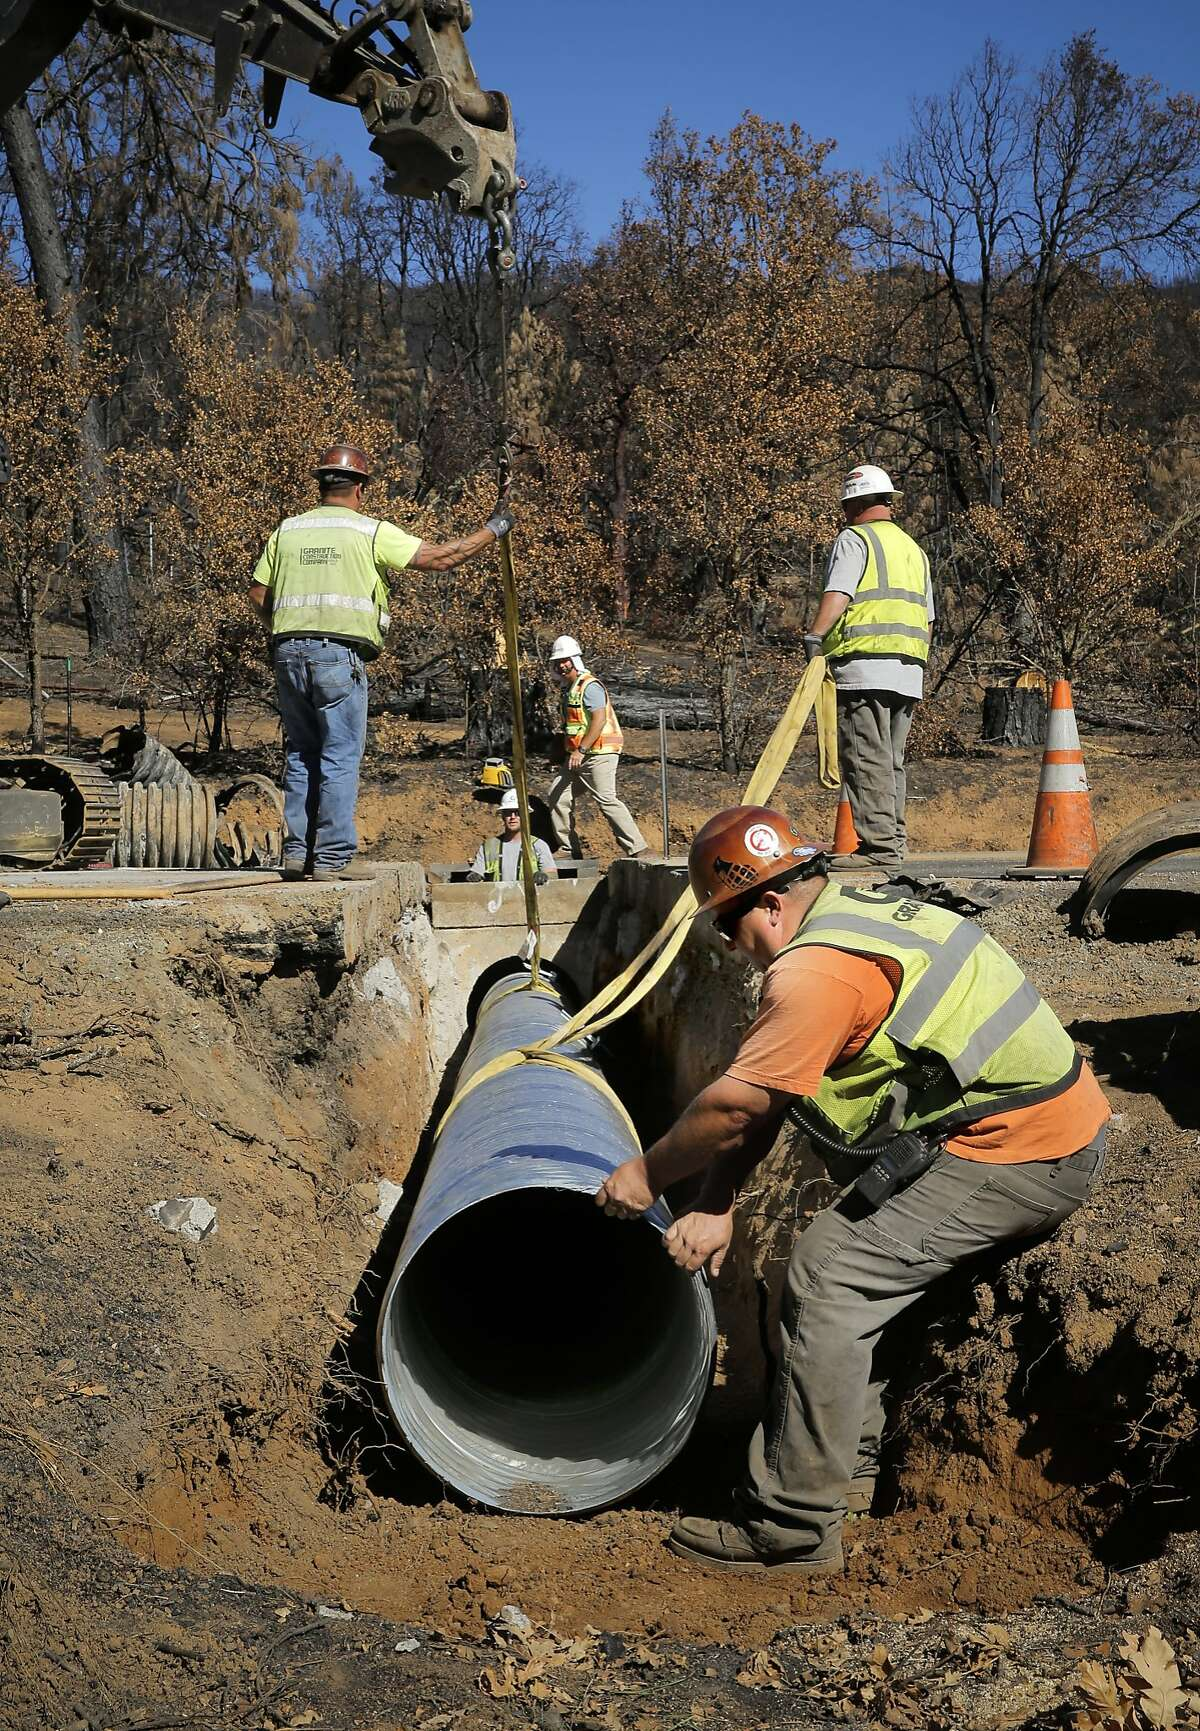 Caltrans contractors including Dustin Pedrotti, (front) replace a fire damaged drainage pipe that runs under highway 175, on Tues. Oct. 20, 2015, in preparation of possible heavy rains this winter after the Valley Fire swept through the highway near Middletown, Calif.